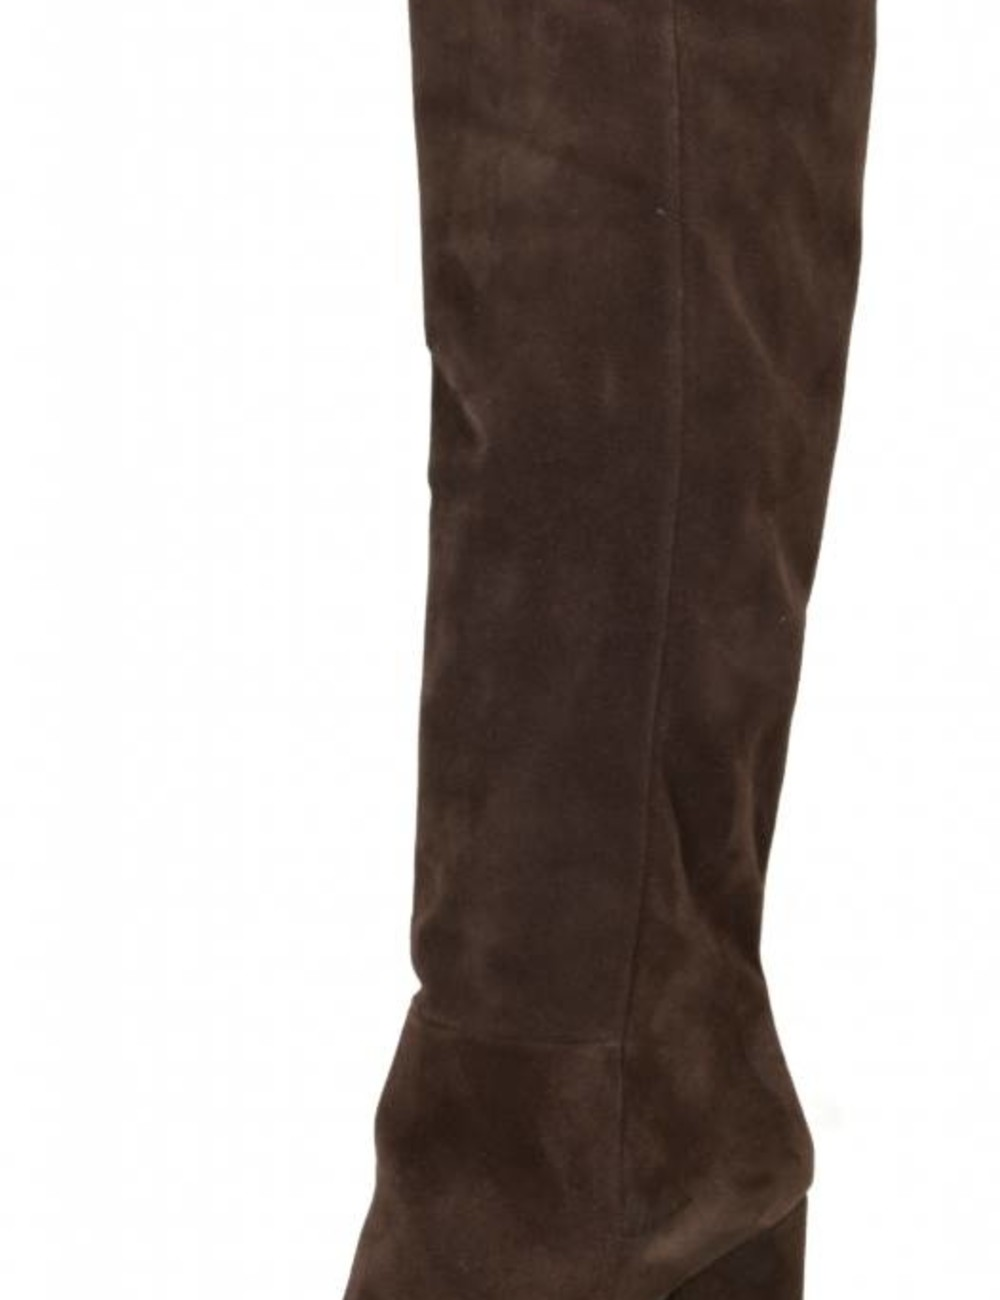 Sanctum Shoes Long pull on knee boots with high heels in suede